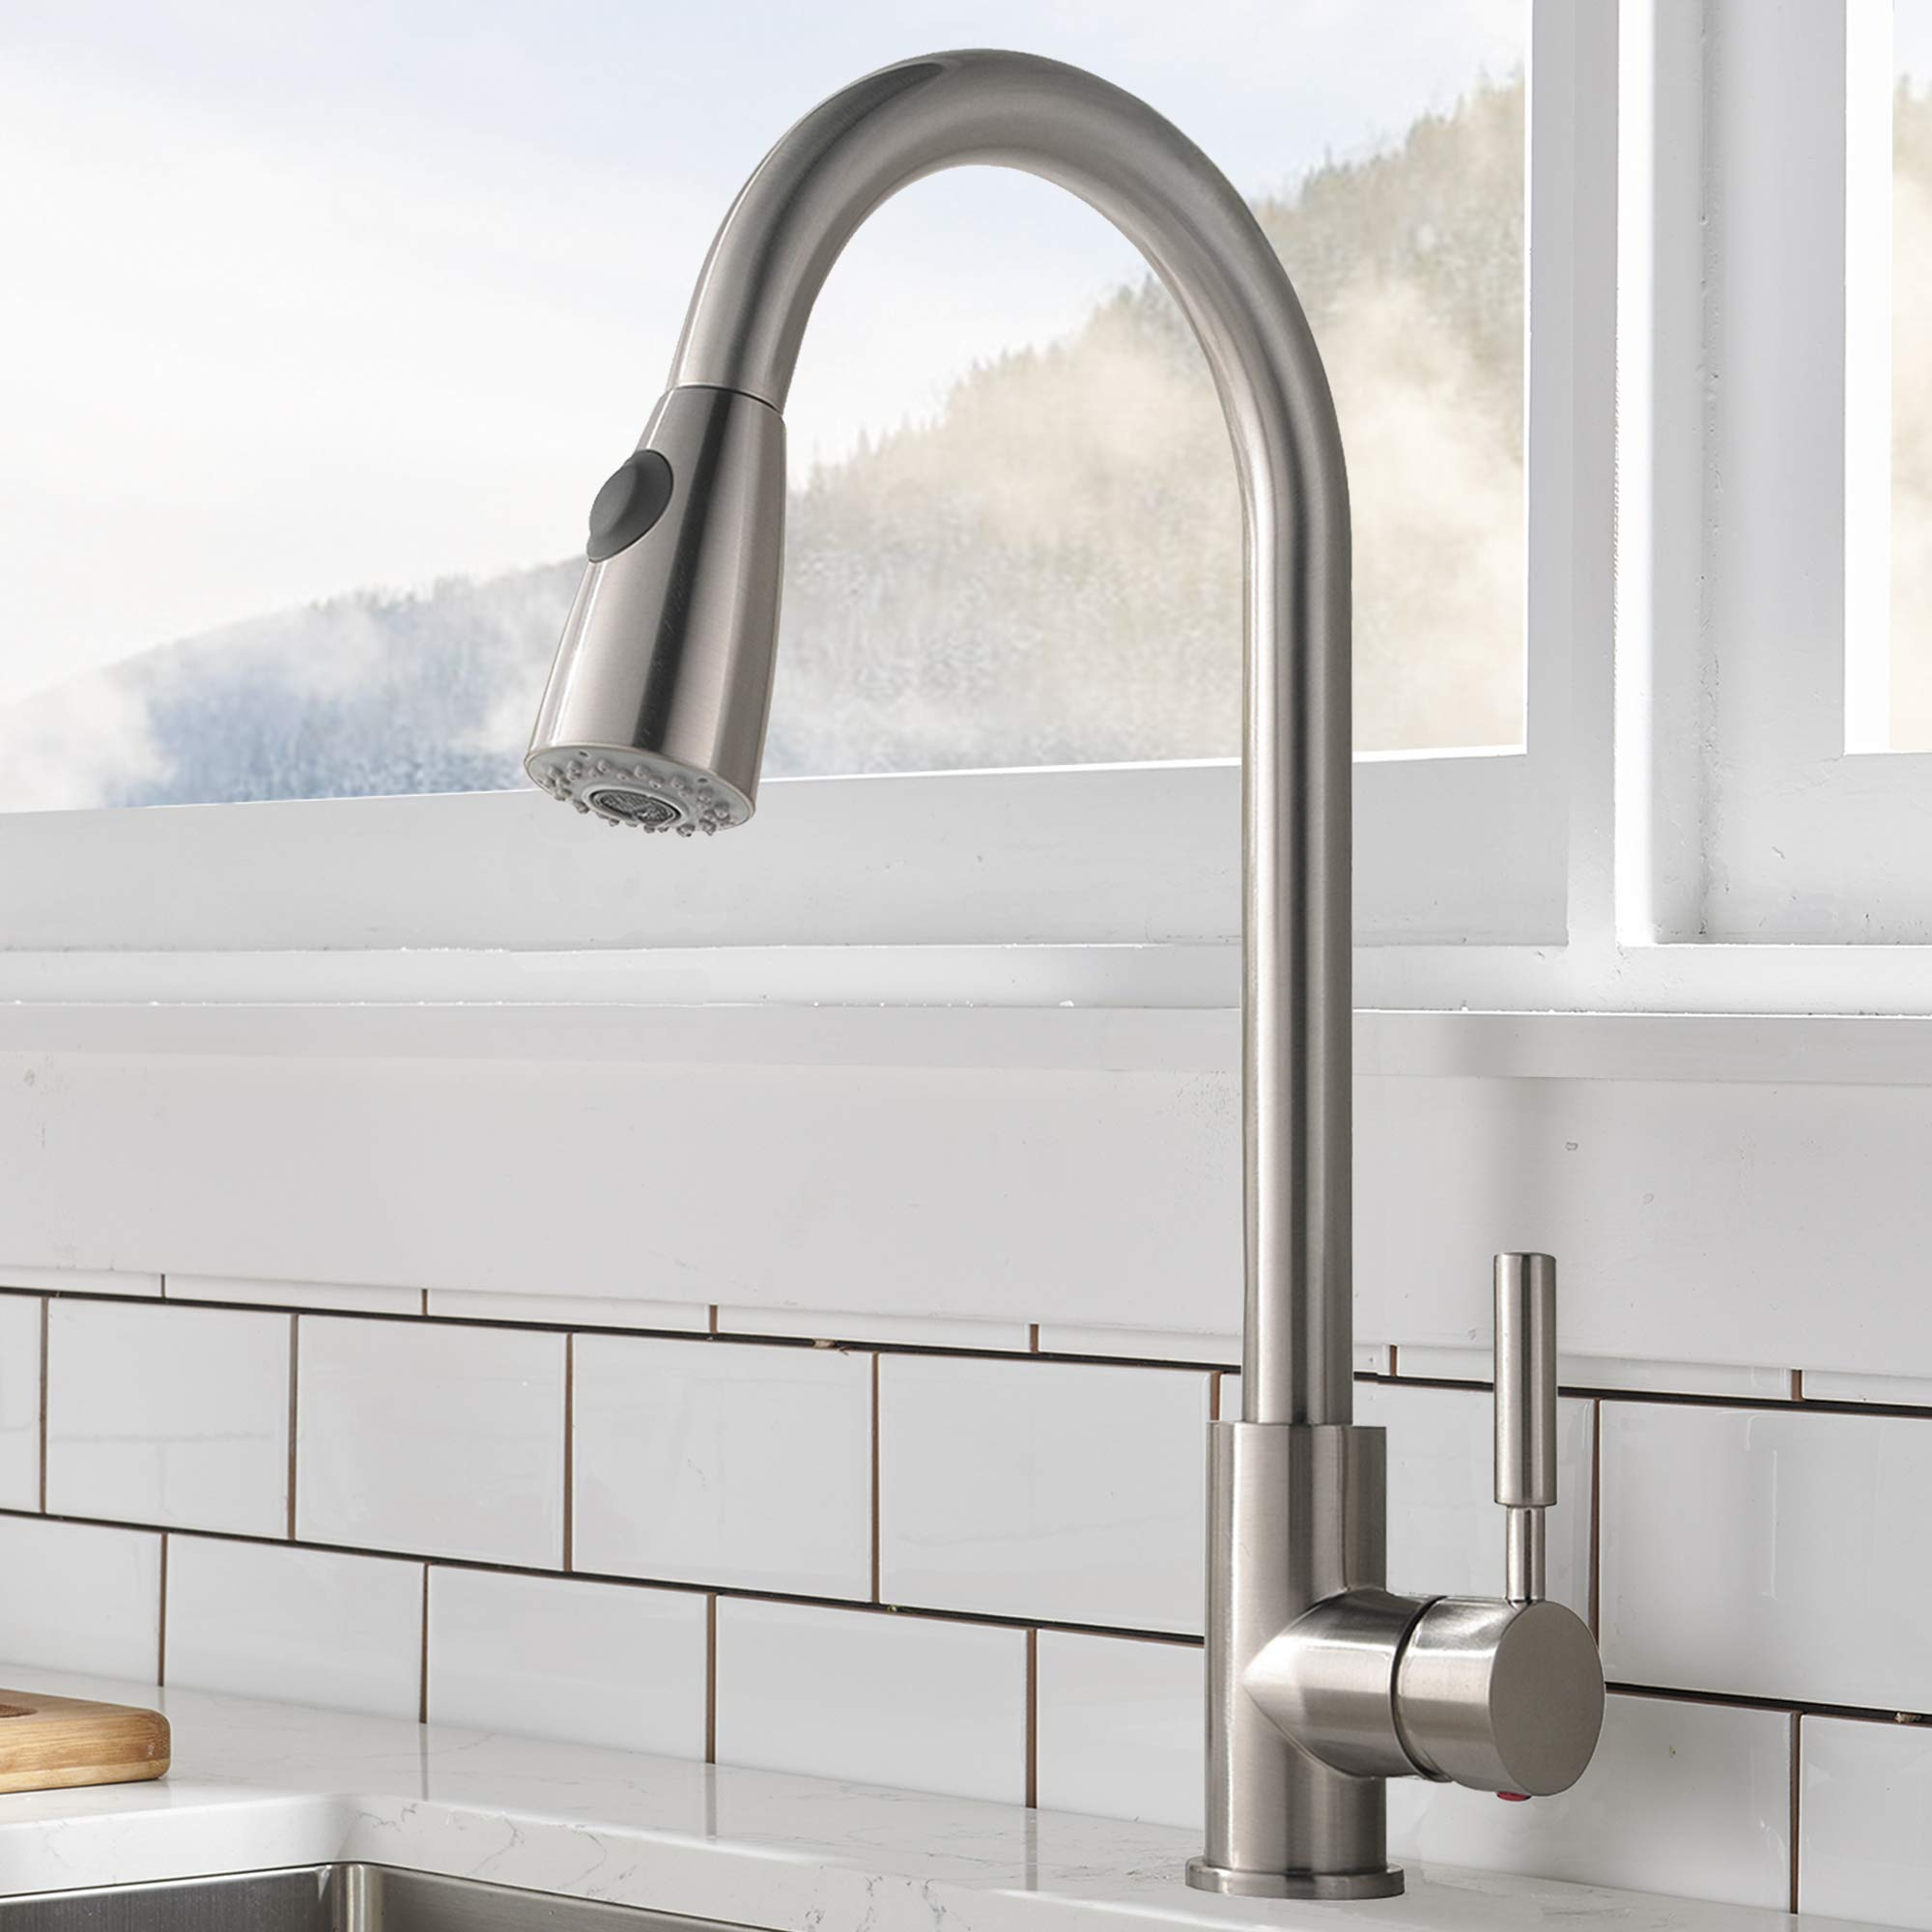 Comllen Commercial Single Handle High Arc Brushed Nickel Pull out Kitchen Faucet,Single Level Stainless Steel Kitchen Sink Faucet with Pull Down Sprayer Without Deck Plate by Comllen